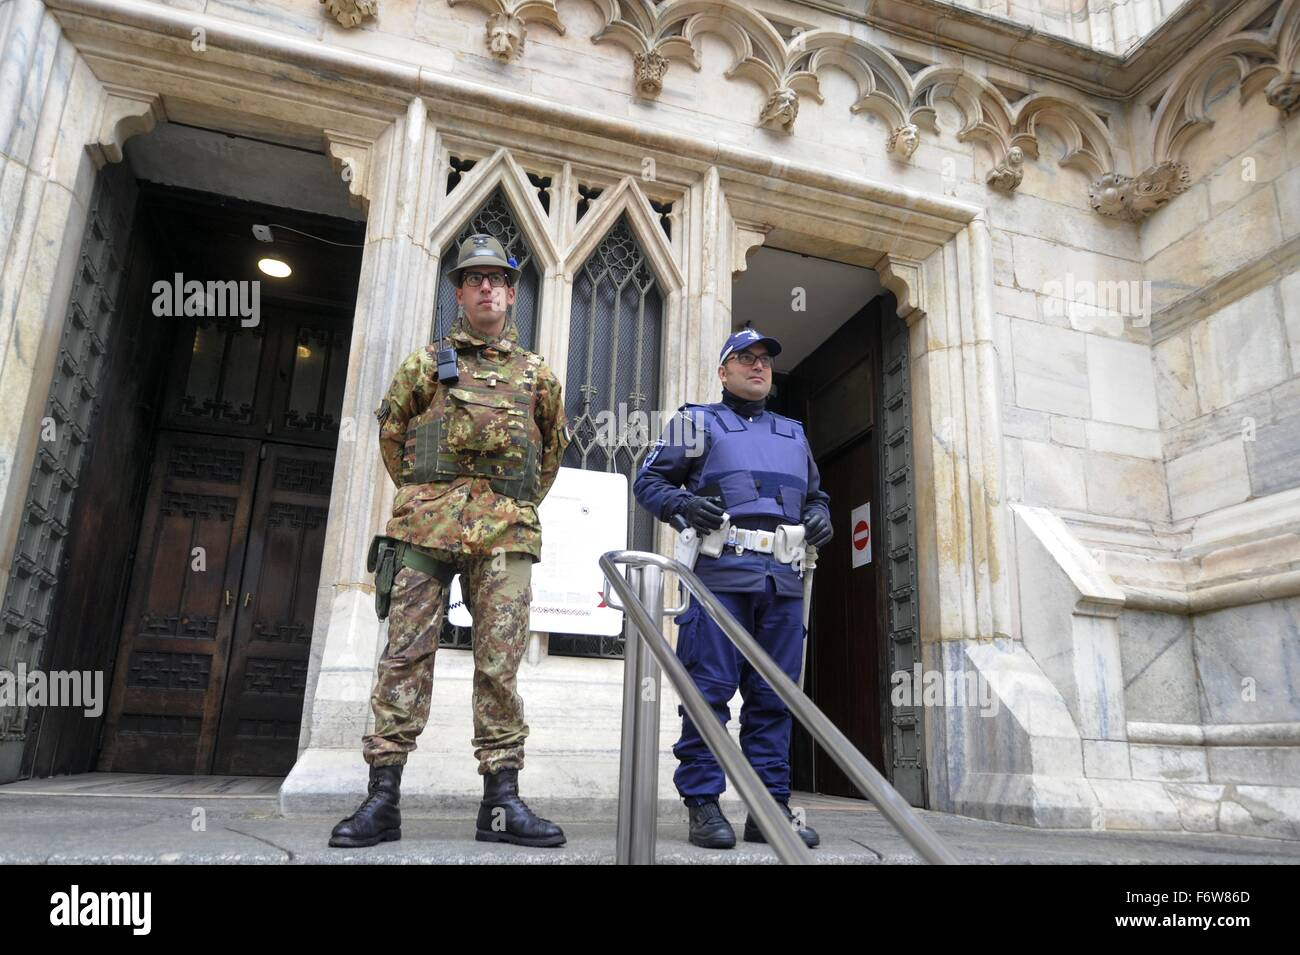 Milan, Italy. 19th November, 2015. The army in anti-terrorism security service around the Cathedral Duomo Credit: - Stock Image